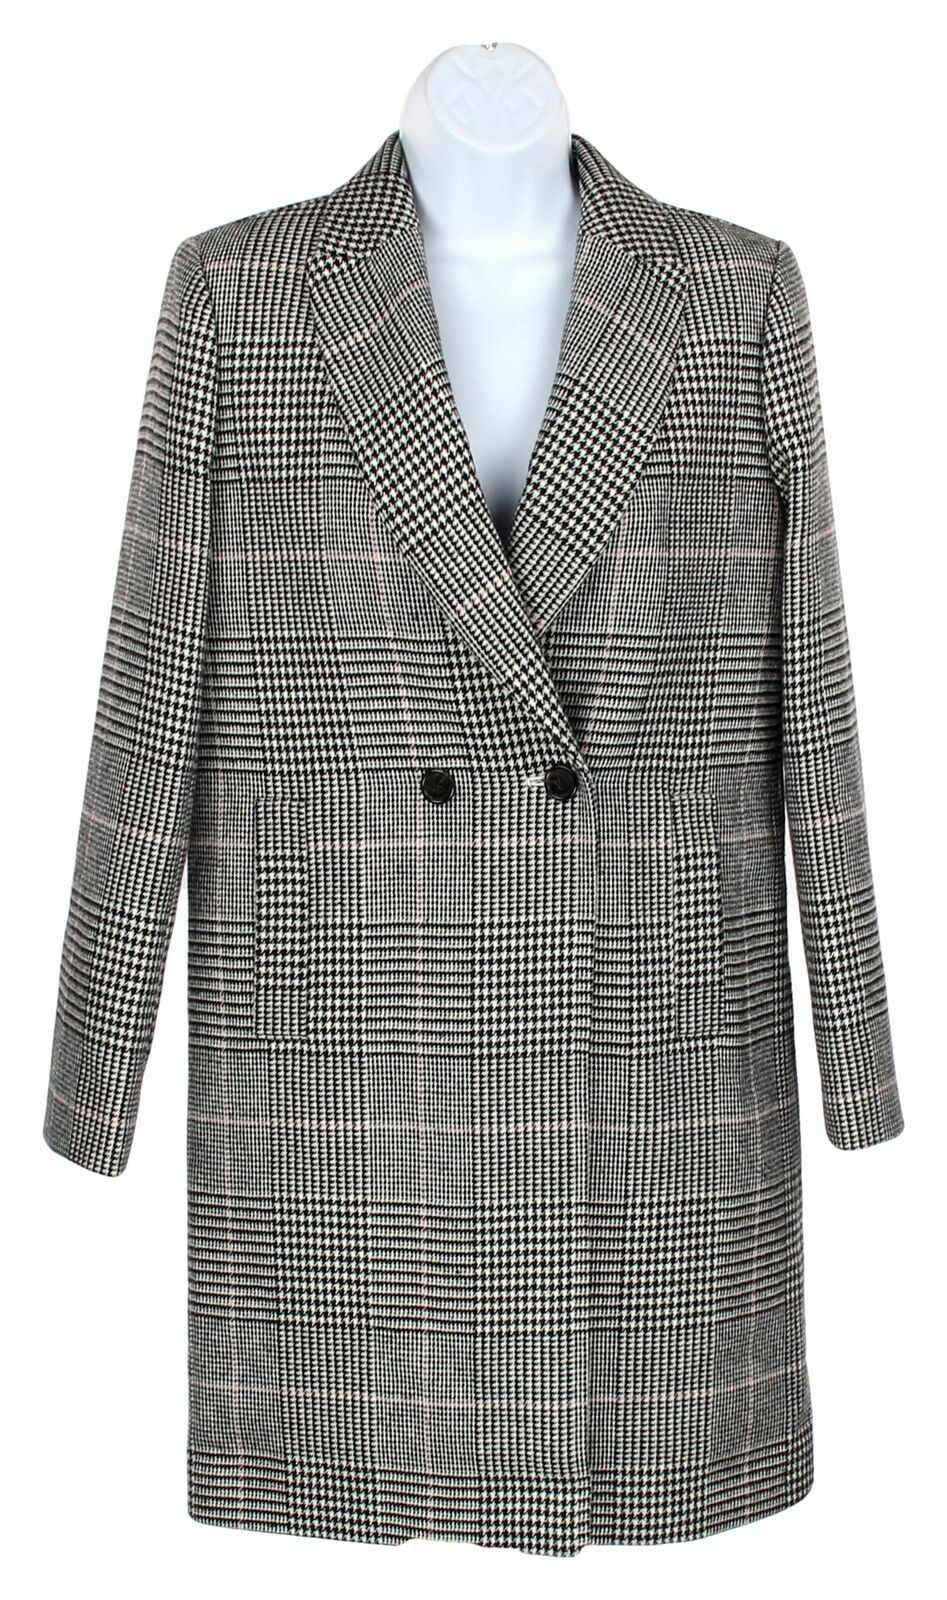 J Besättning kvinnor Daphne Top Coat in Glen Plaid Wool Blend Dress Coat 12 K0701